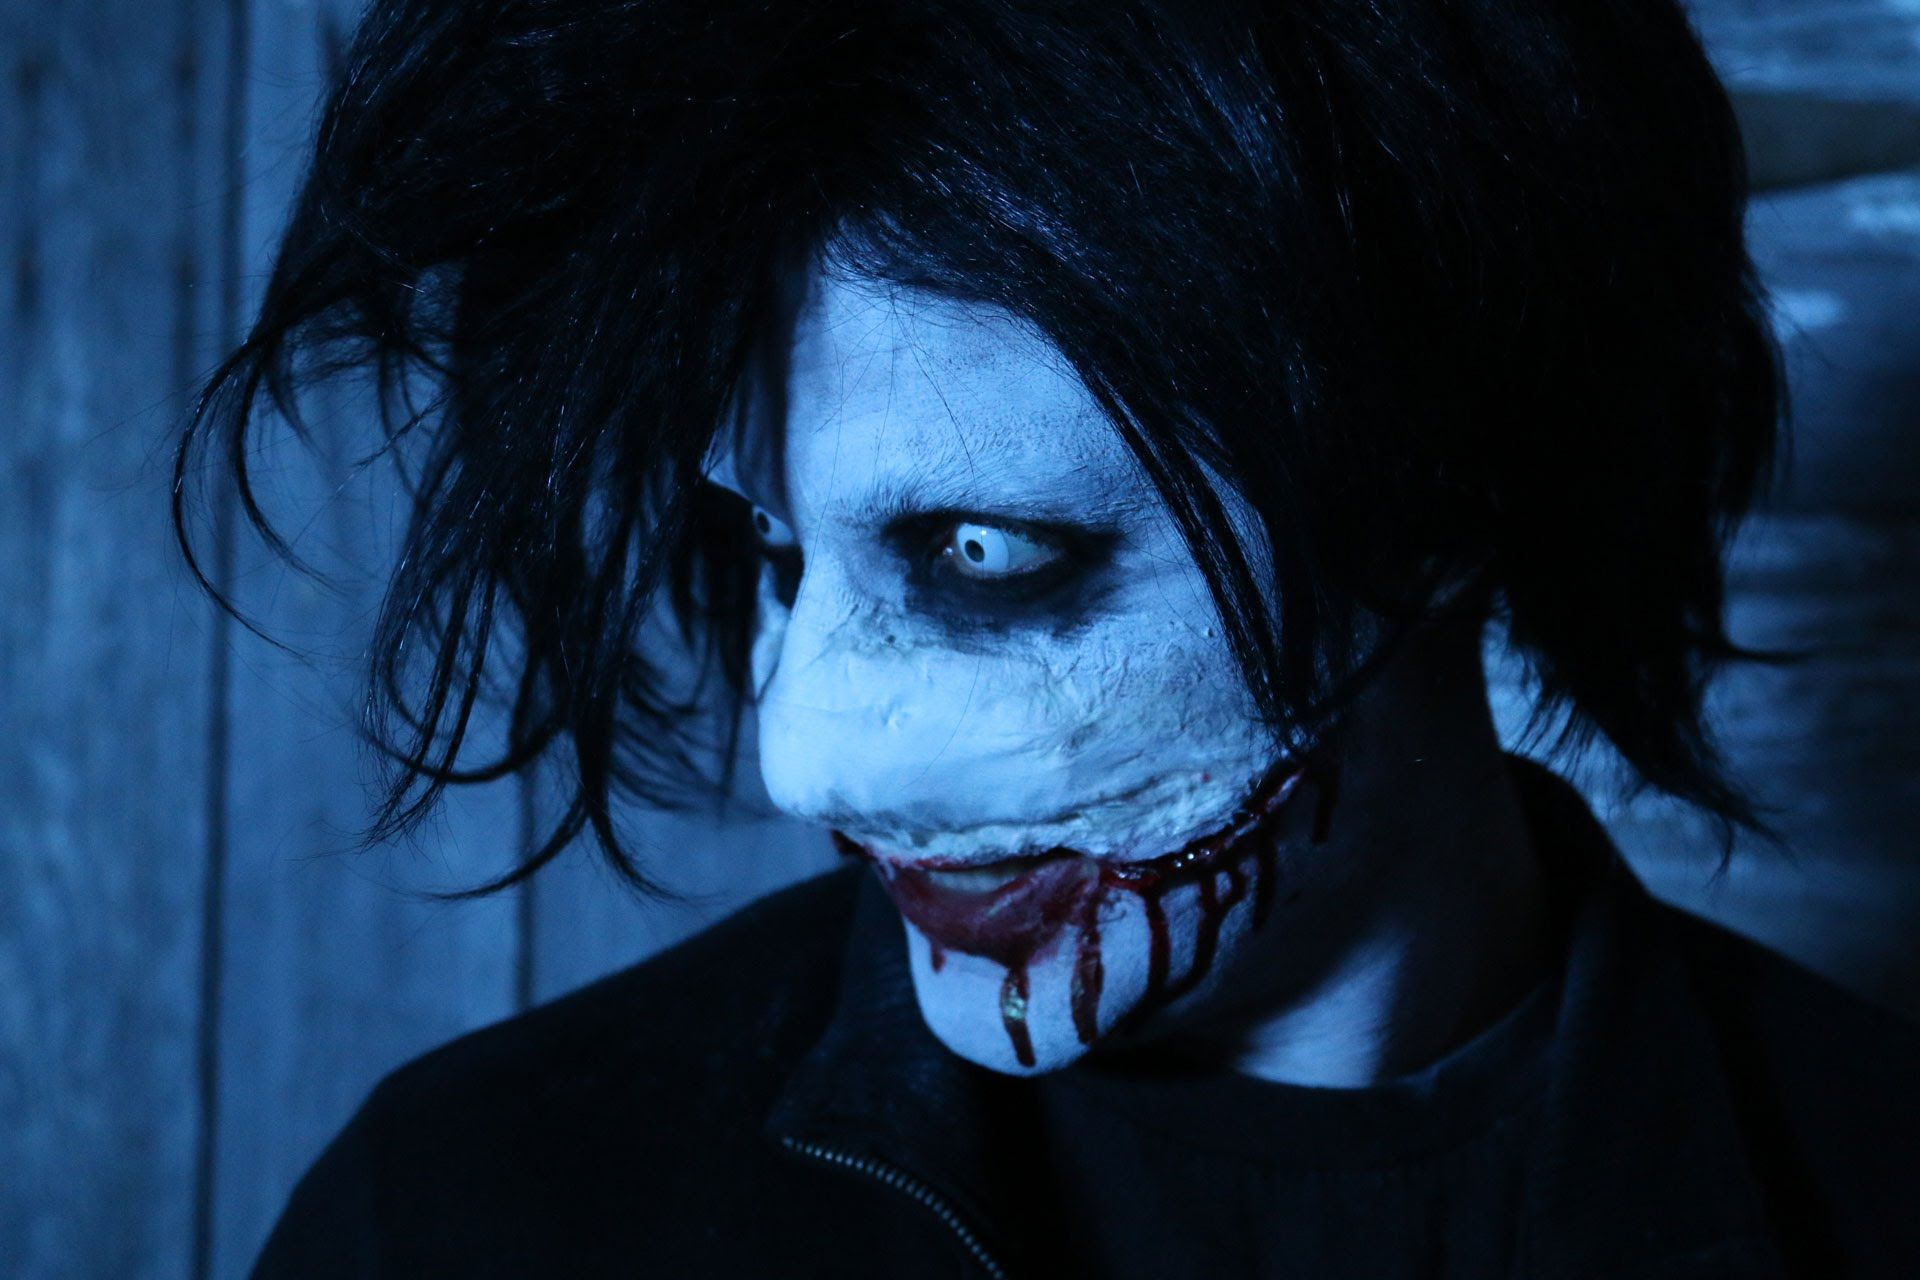 diy jeff the killer halloween makeup tutorial diy makeup